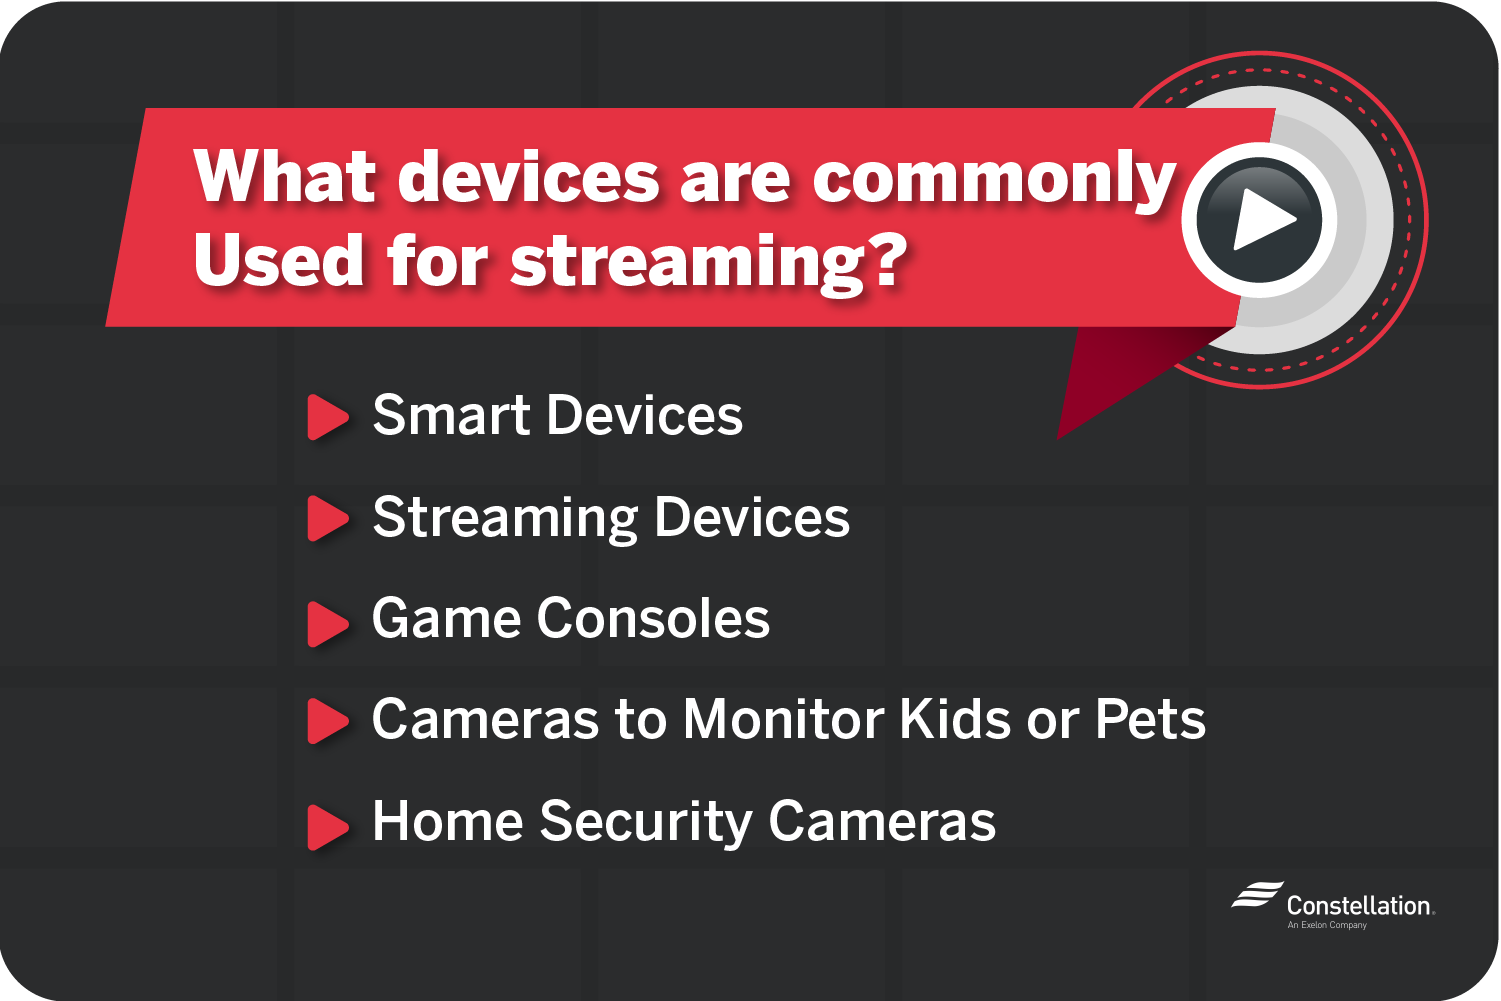 Devices commonly used for streaming